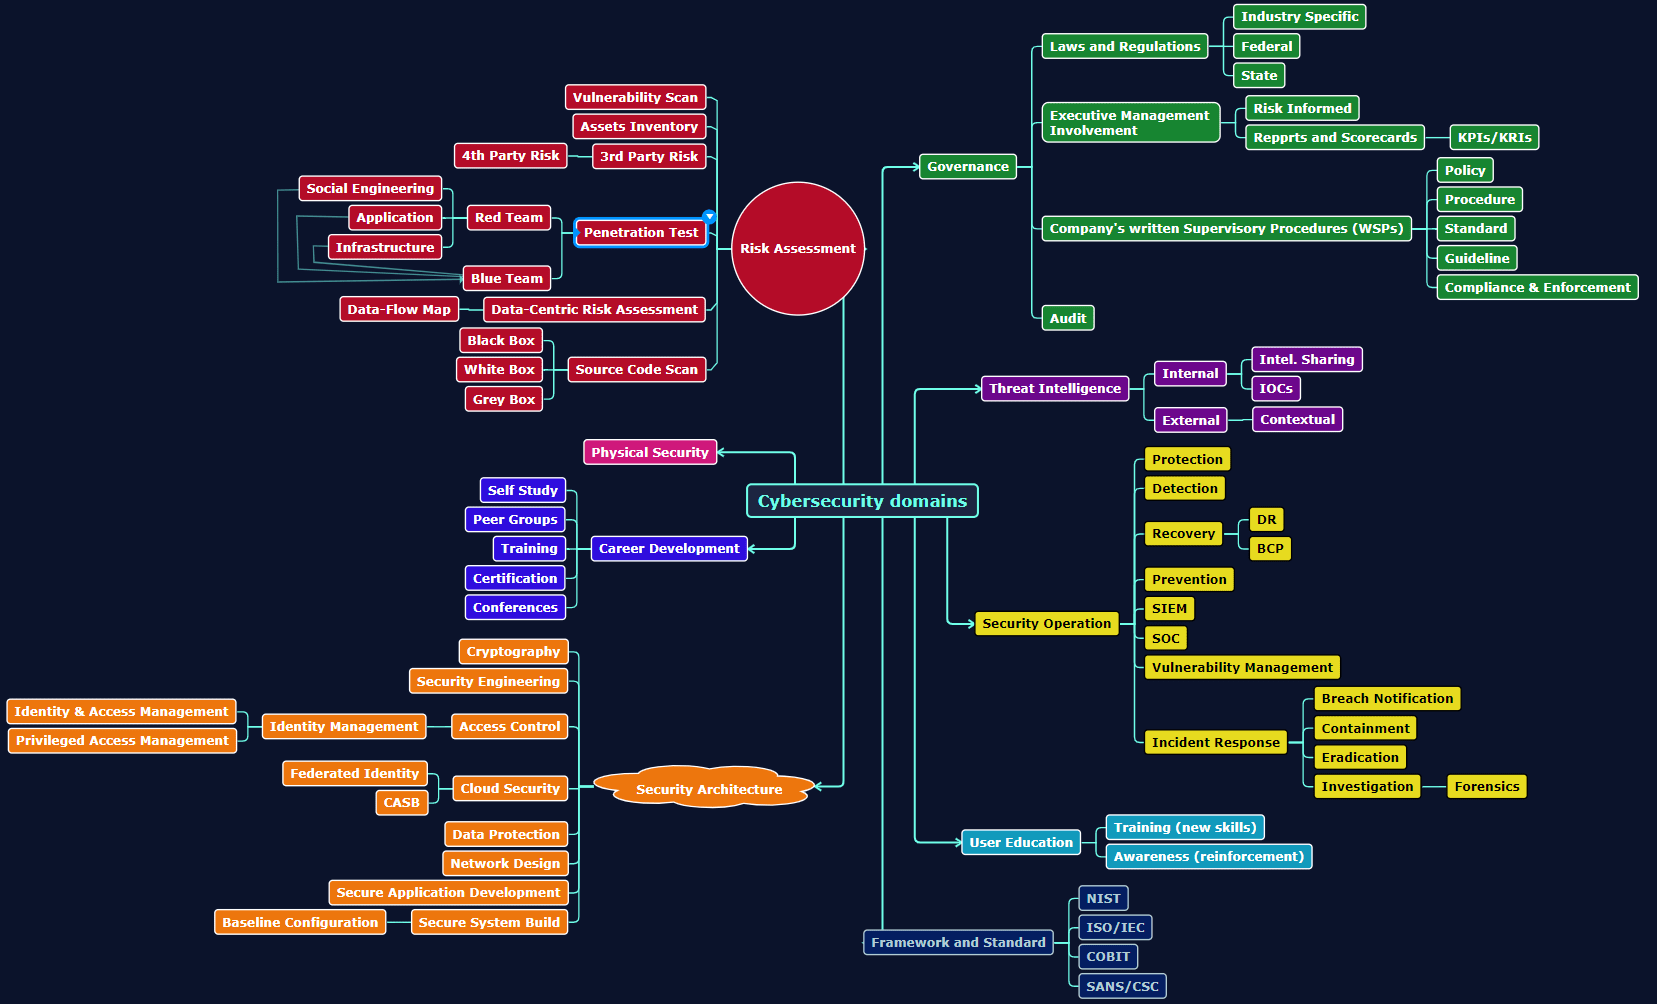 Cybersecurity domains v1.